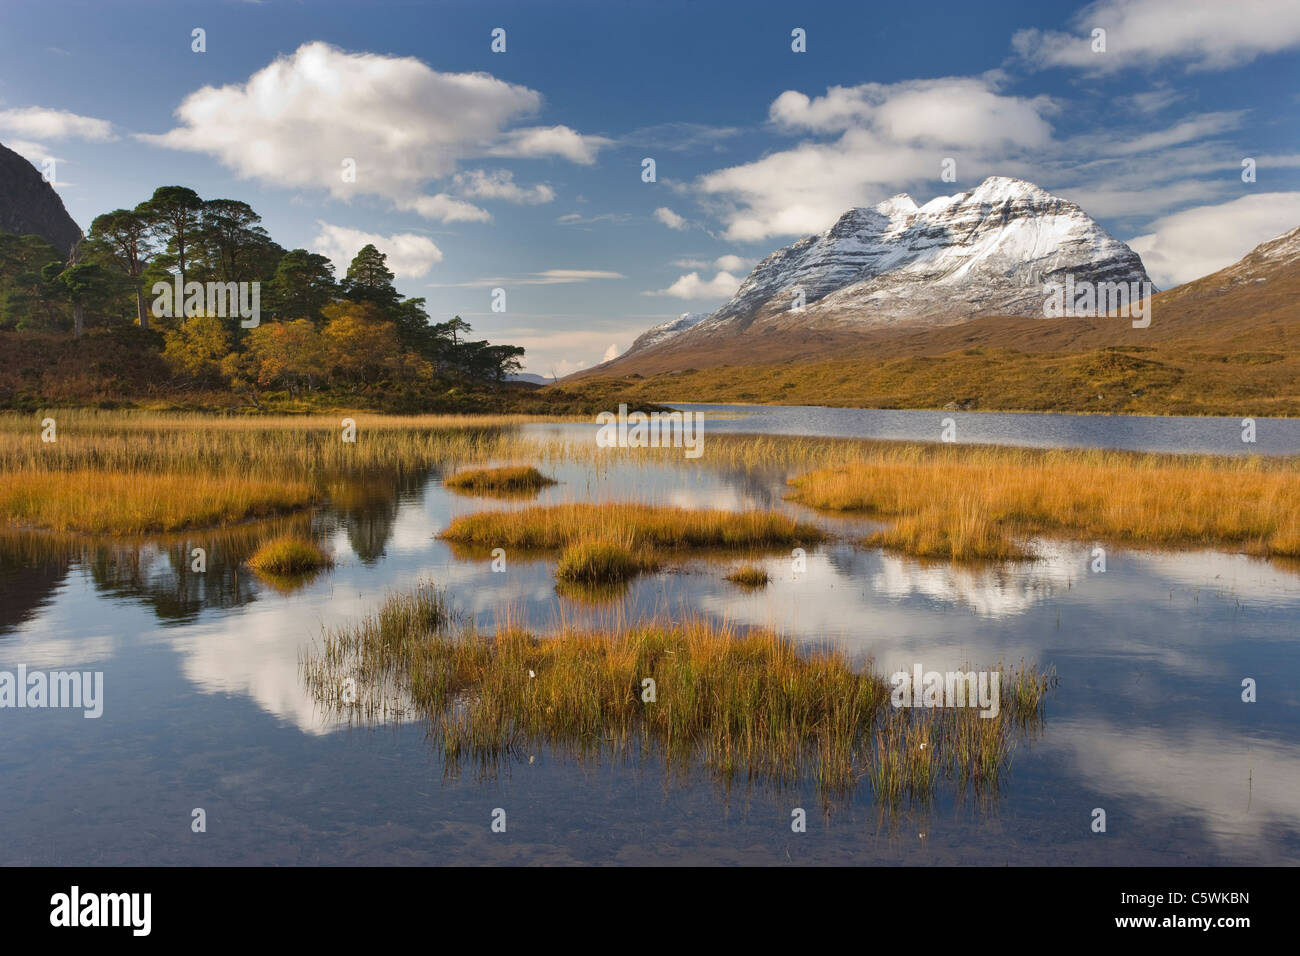 Loch Clair and Liathach in autumn, Torridon, North-west Scotland, Great Britain. - Stock Image